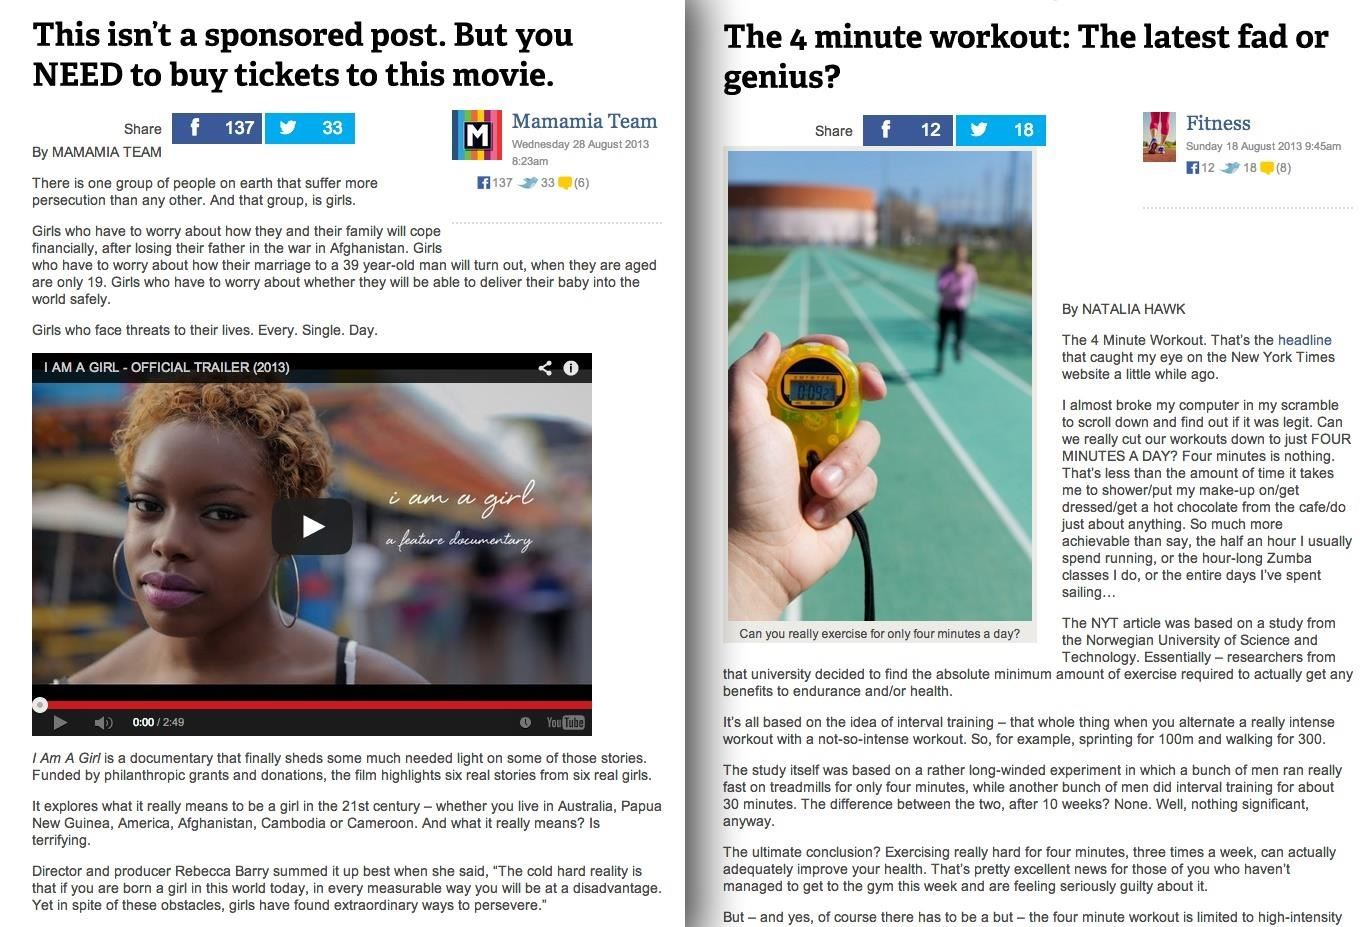 How to Stop Being Duped by BuzzFeed, Upworthy, & Other Headline Clickbaiters